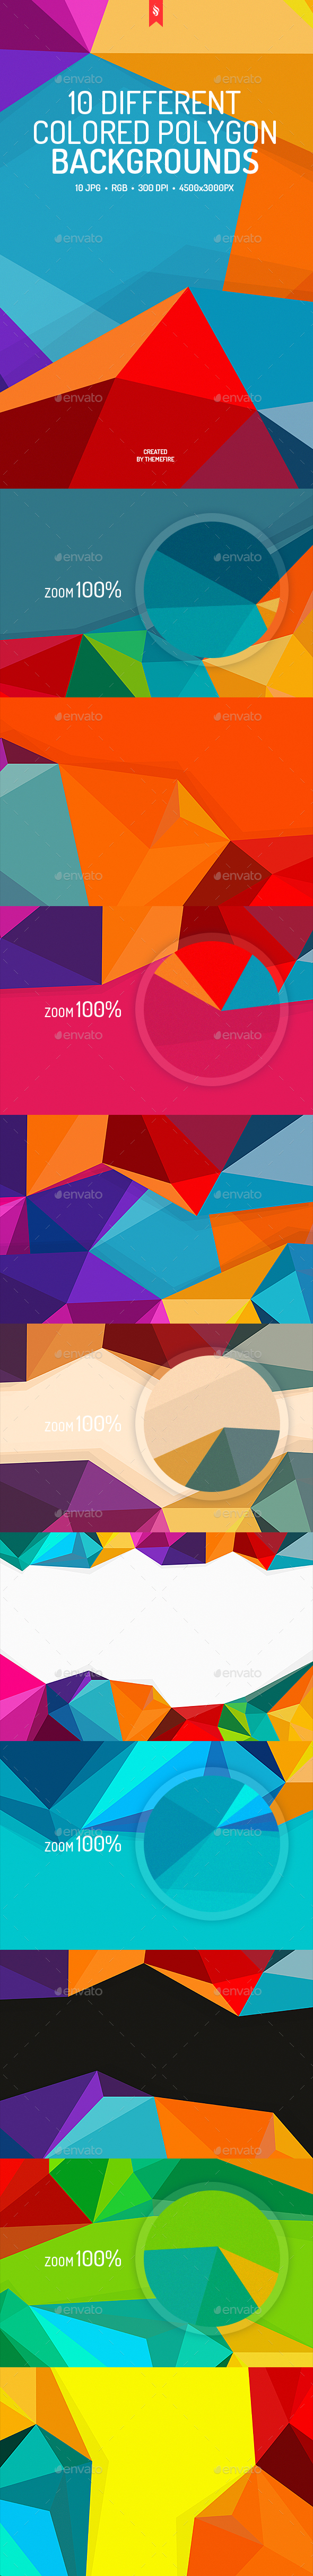 10 Different Colored Polygon Backgrounds  #polygonal #colorful • Download ➝ https://graphicriver.net/item/10-different-colored-polygon-backgrounds/18810197?ref=pxcr